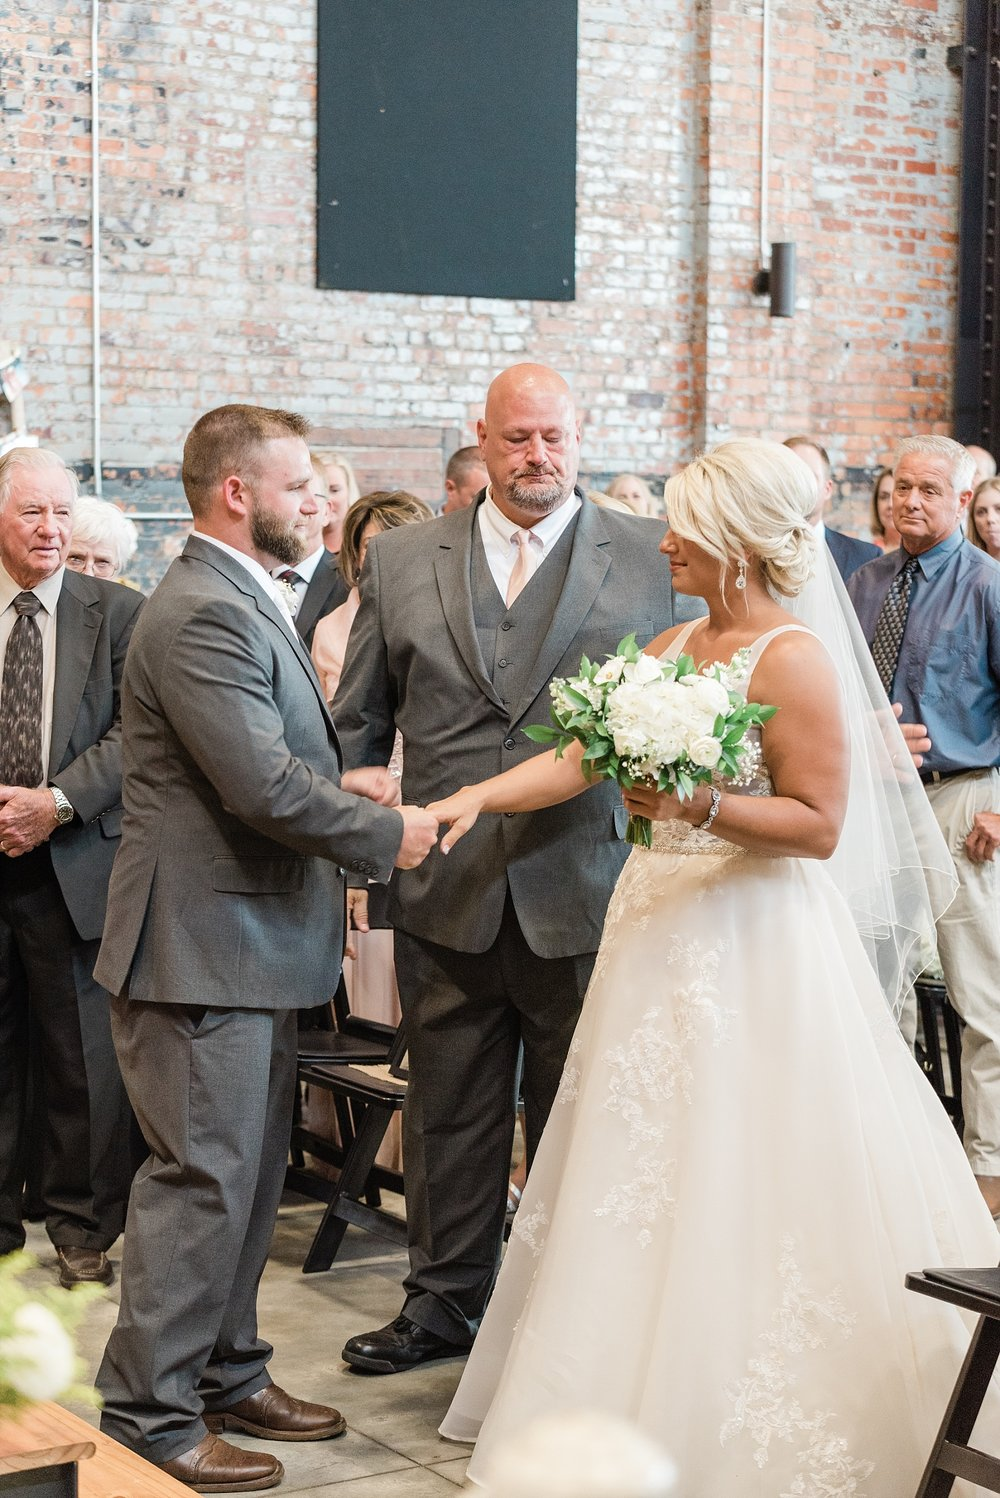 Rose Gold, White, and Greenery High Class Summer Wedding at The Millbottom in Downtown Jefferson City by Kelsi Kliethermes Photography_0039.jpg